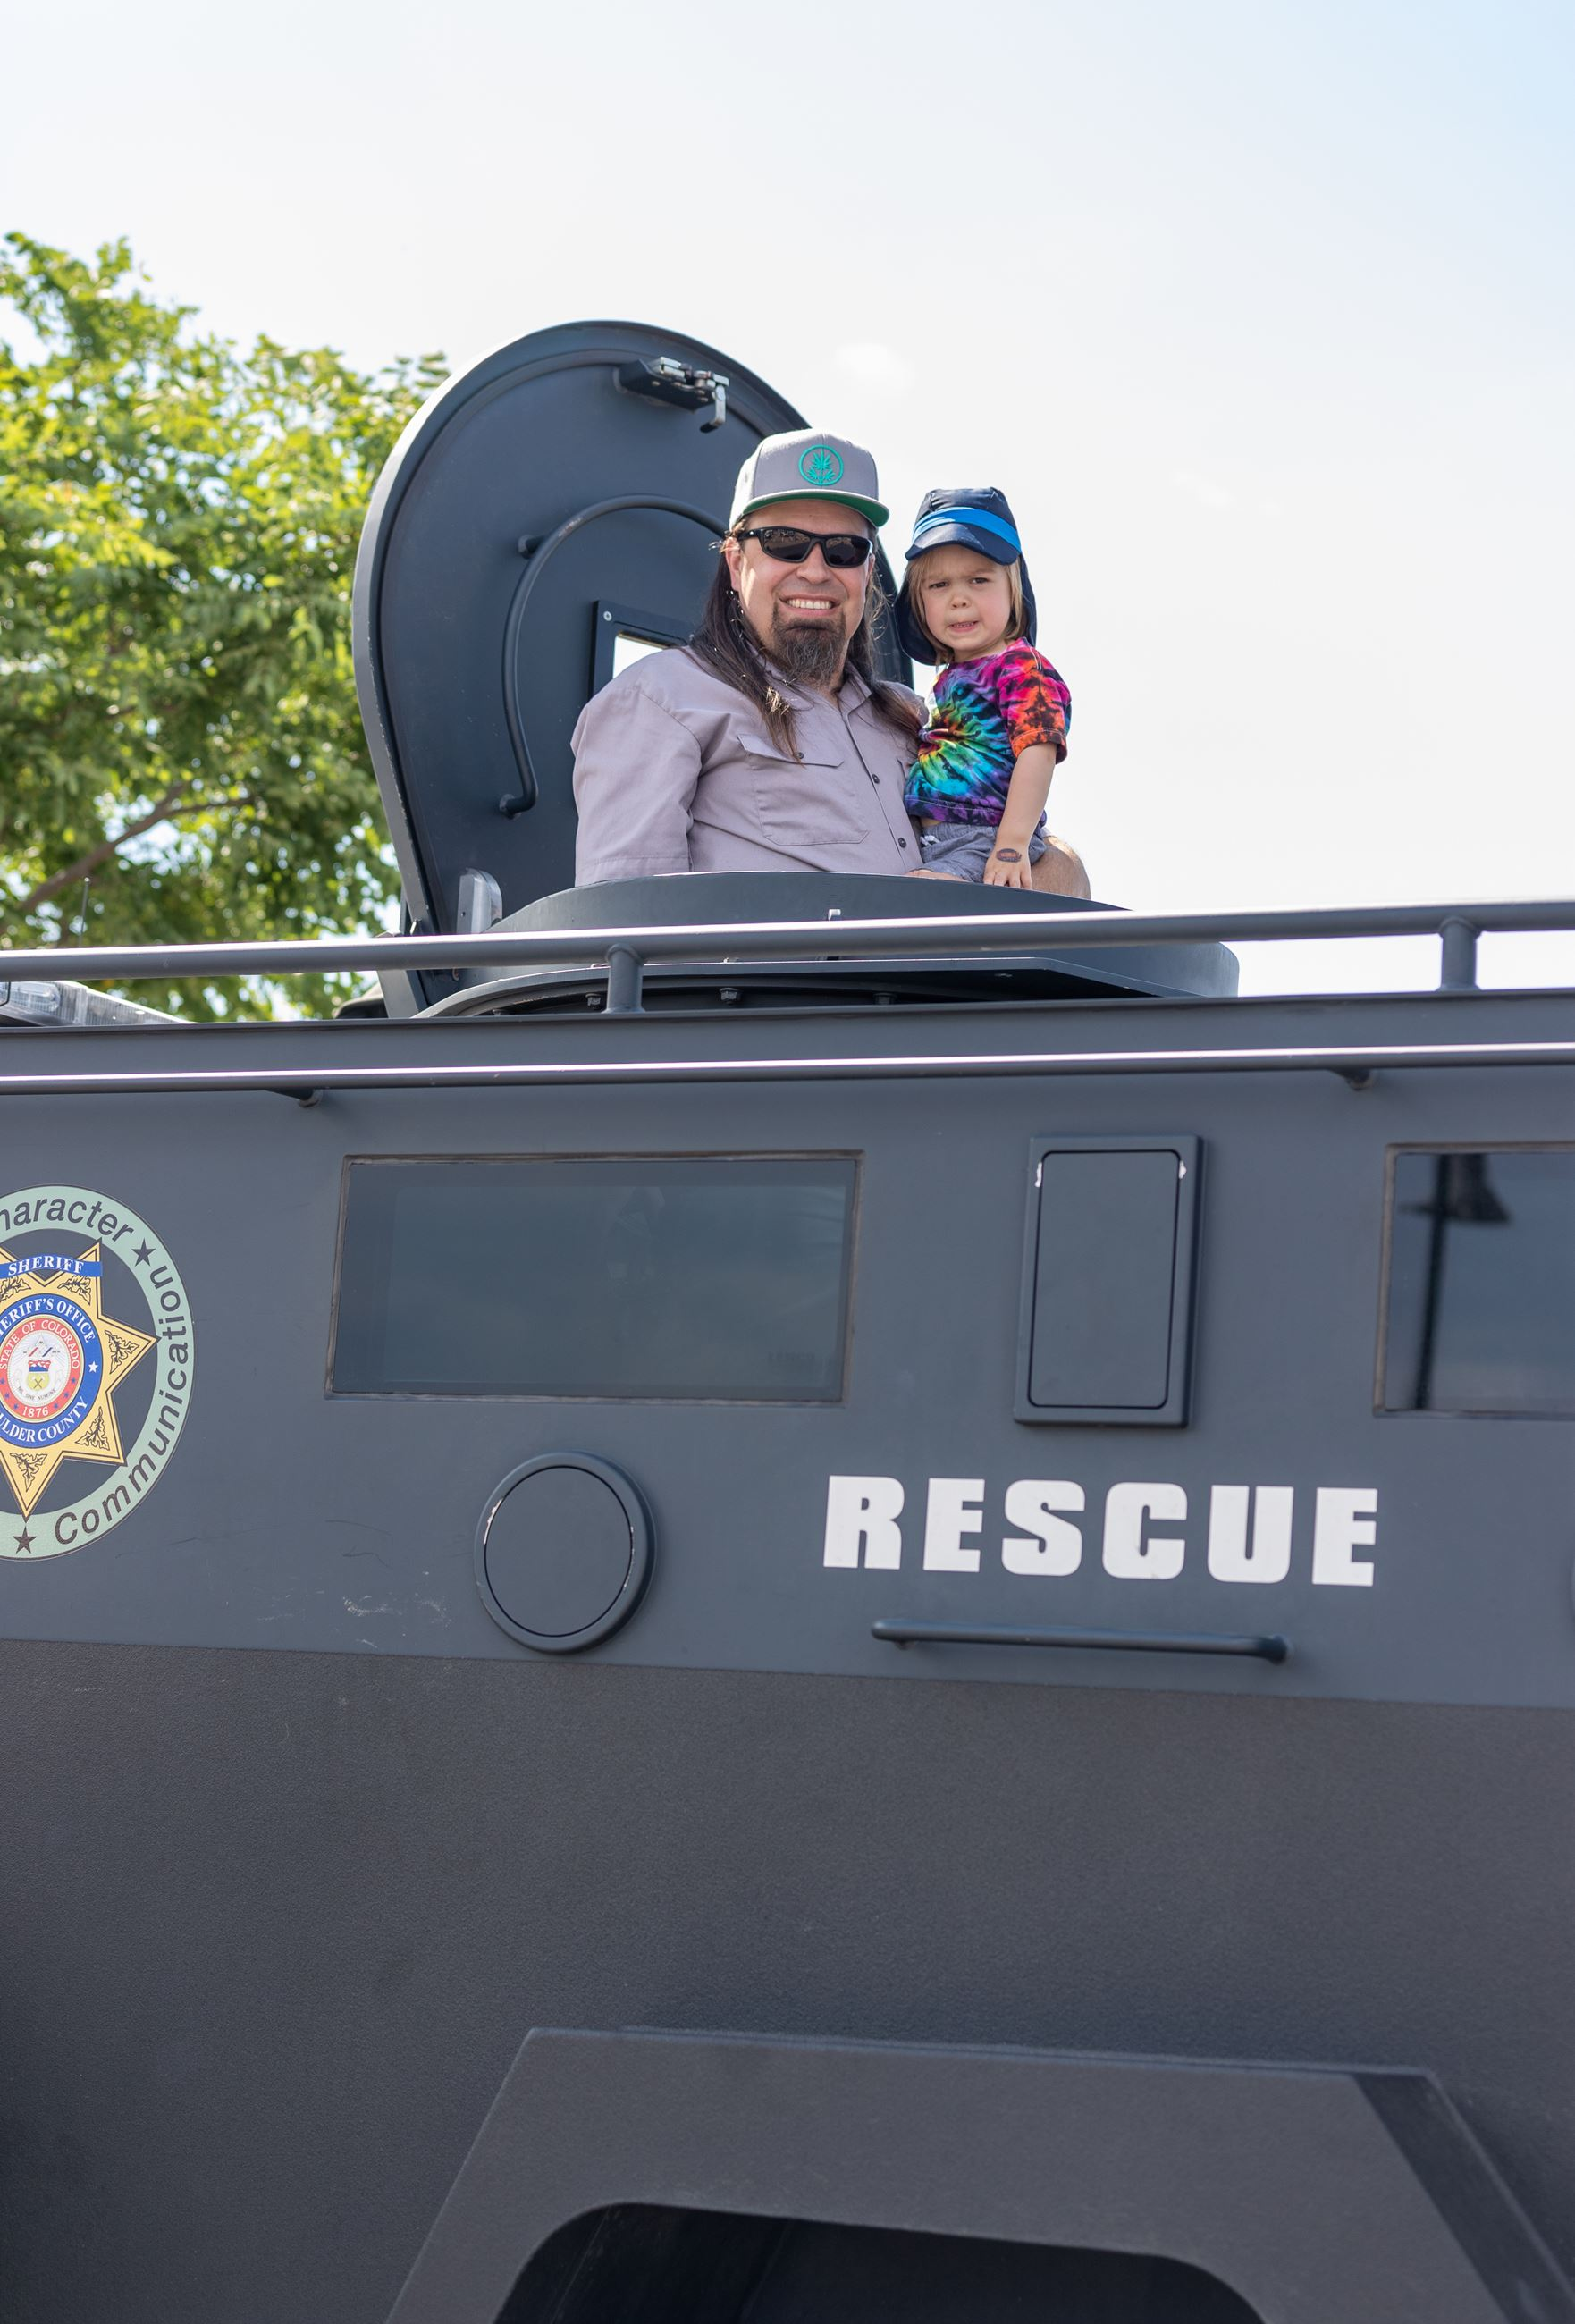 Touch A Truck Participant Photo - Rescue Vehicle